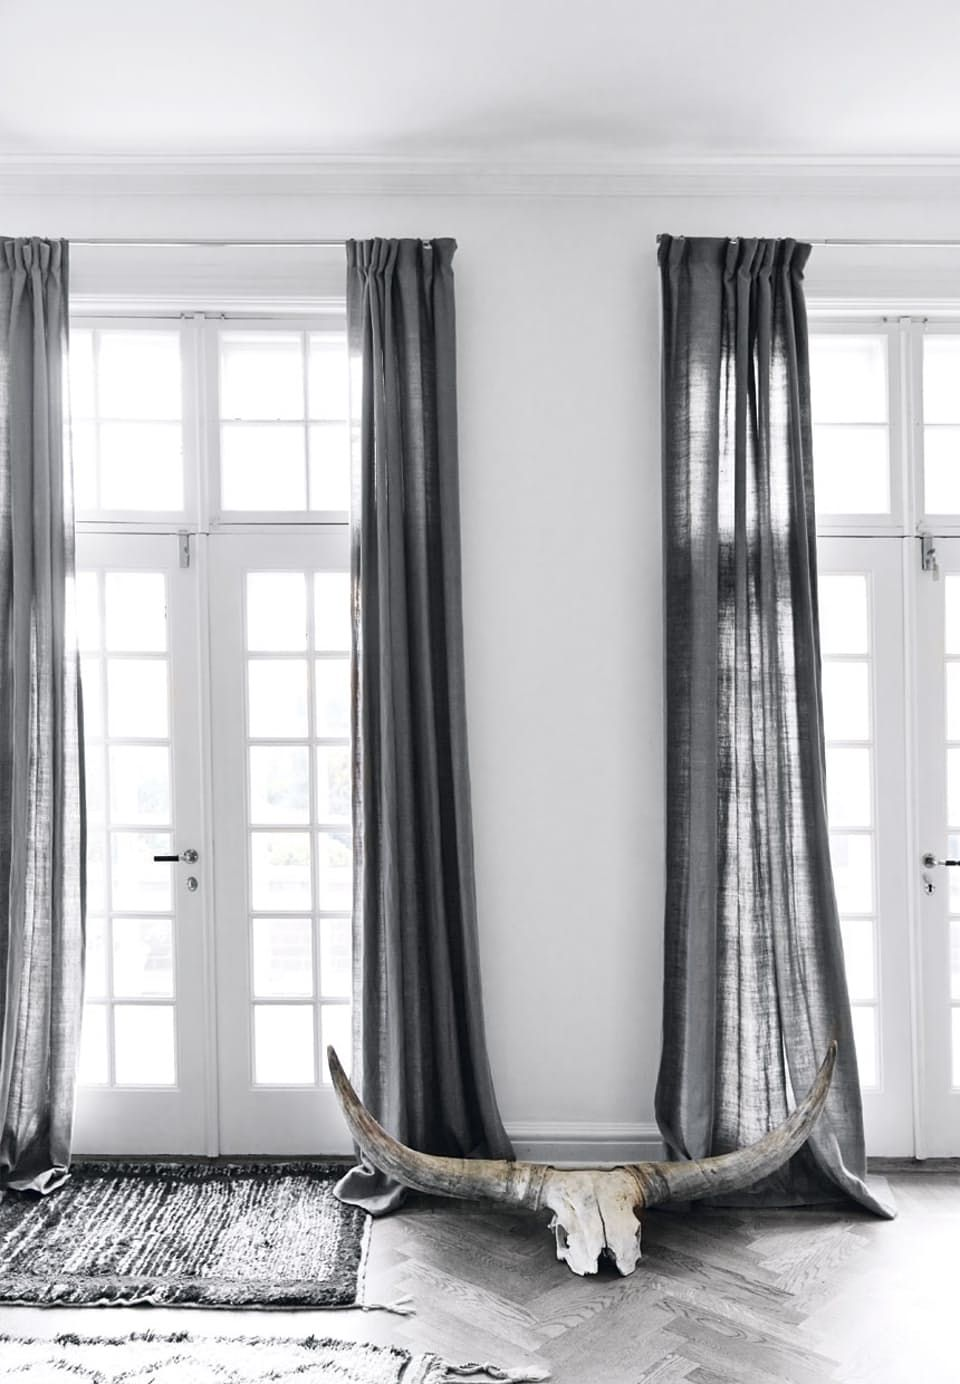 Curtains In Linen In Grey All The Way Down To The Floor